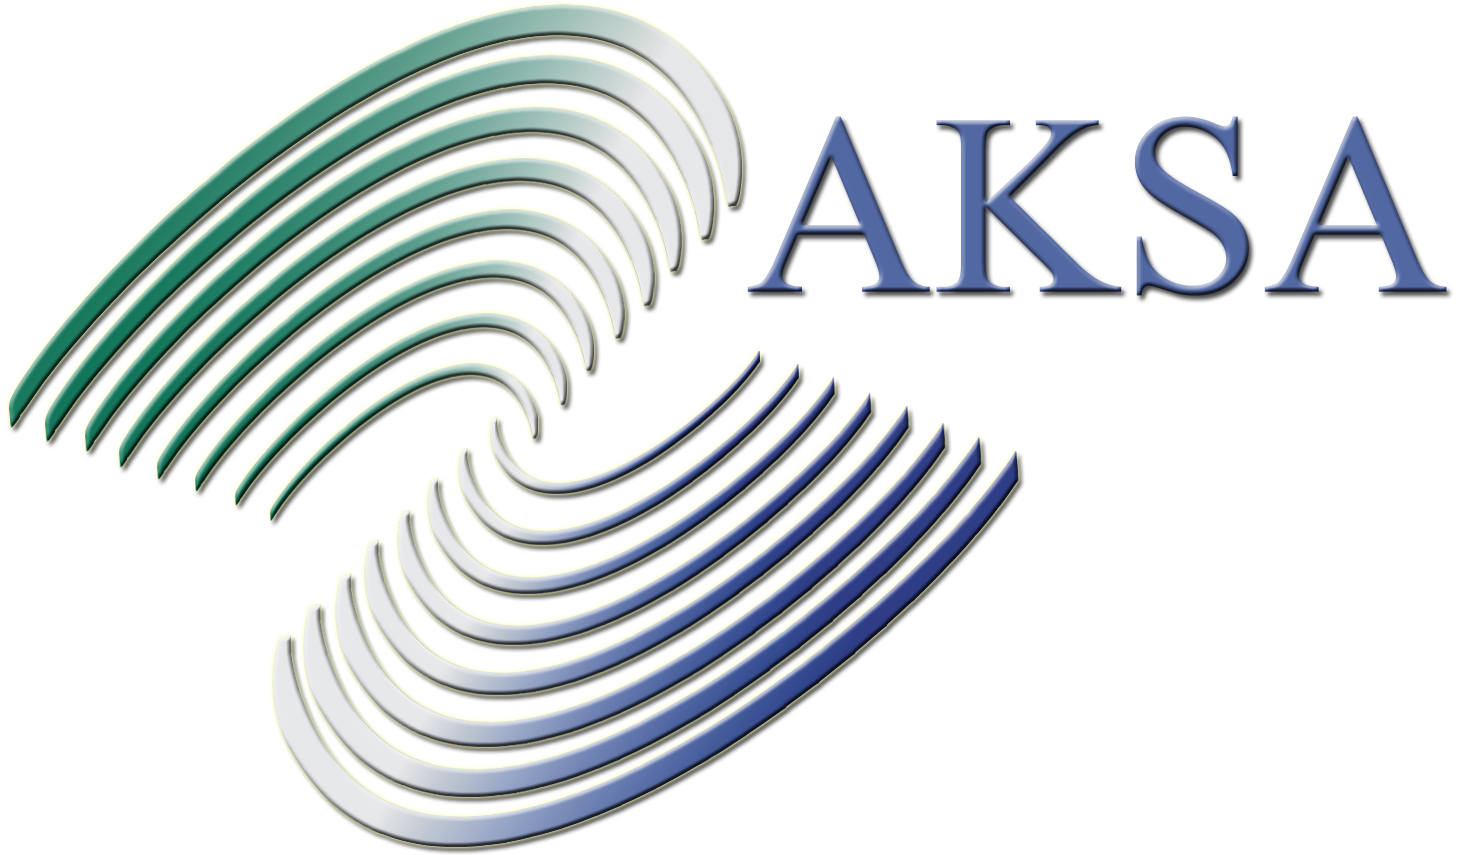 http://www.pakpositions.com/company/aksasds